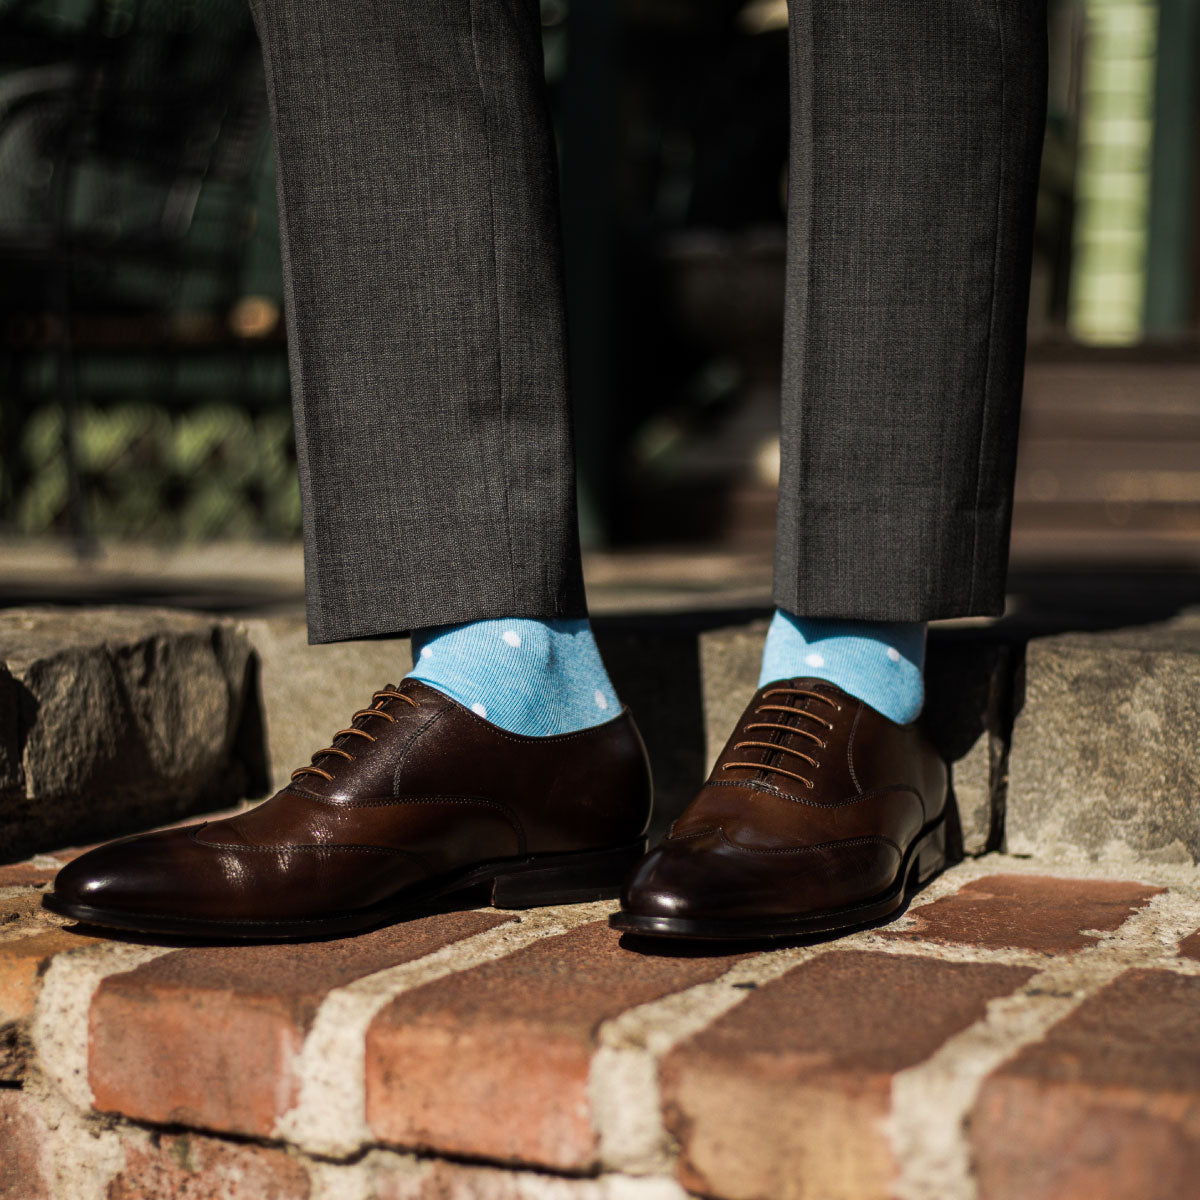 Man wearing charcoal grey slacks, baby blue and white polka dot socks, and brown dress shoes